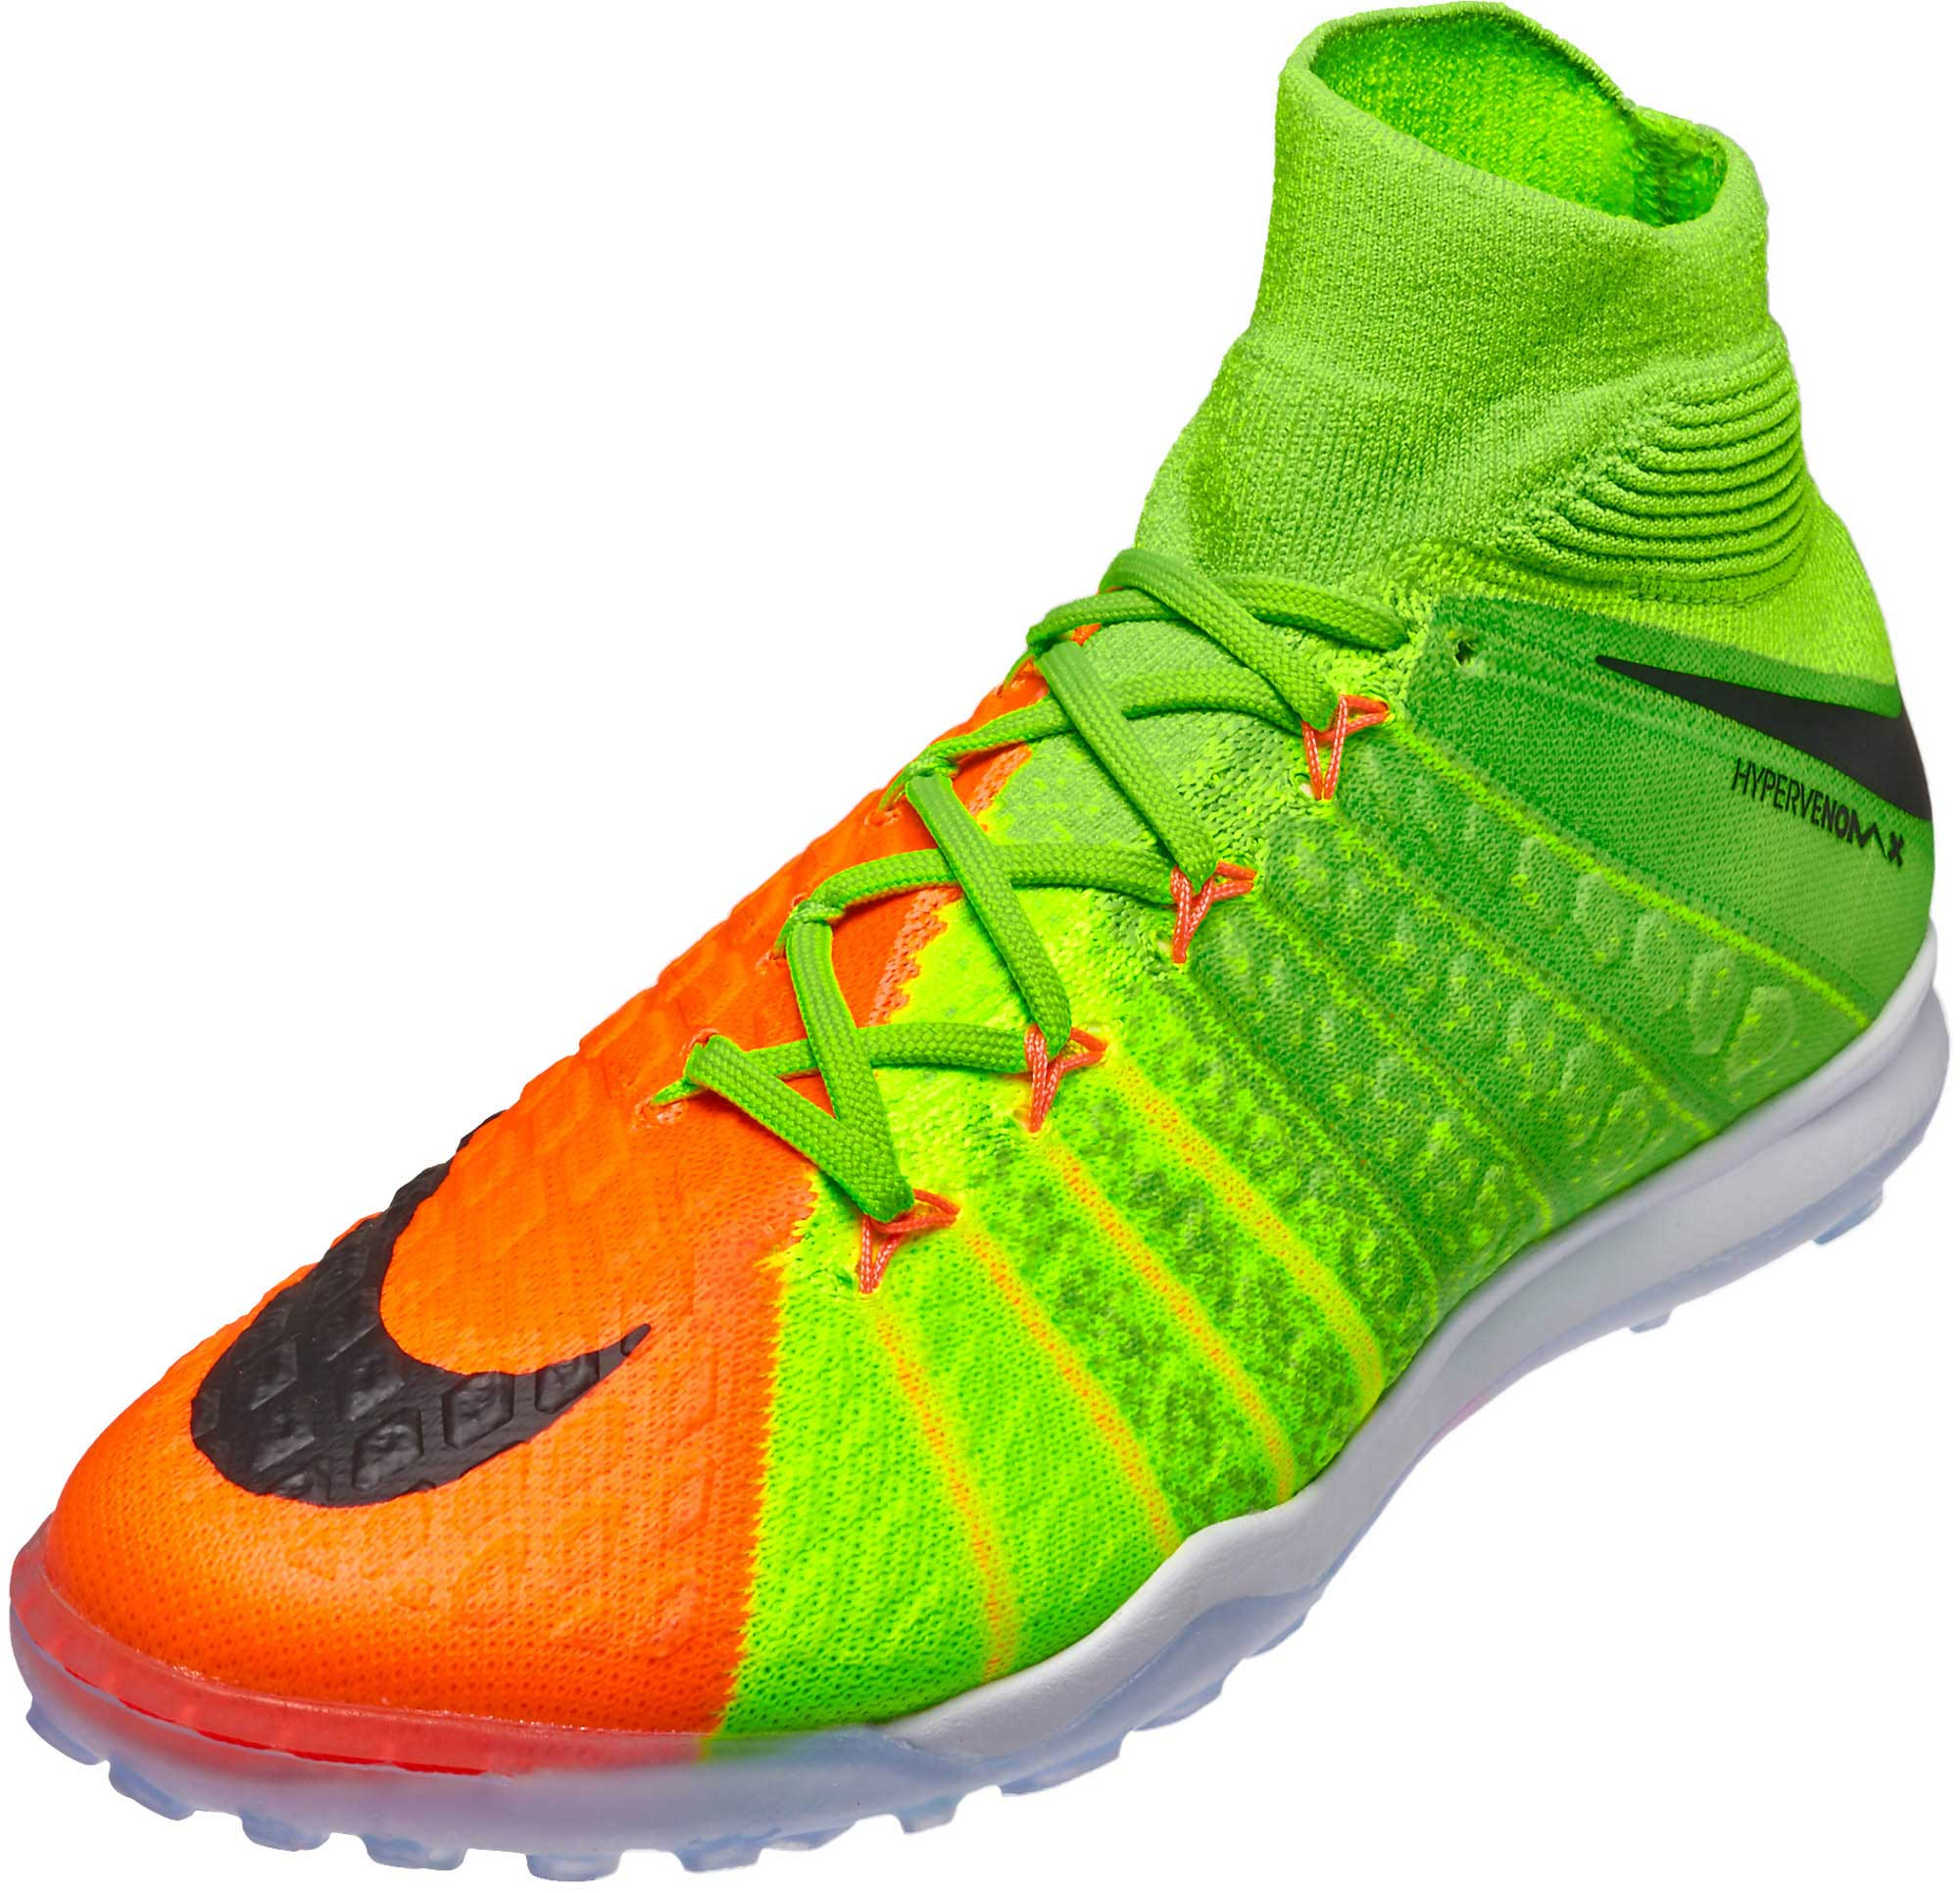 Nike HypervenomX Proximo II TF Soccer Shoes - Electric ...